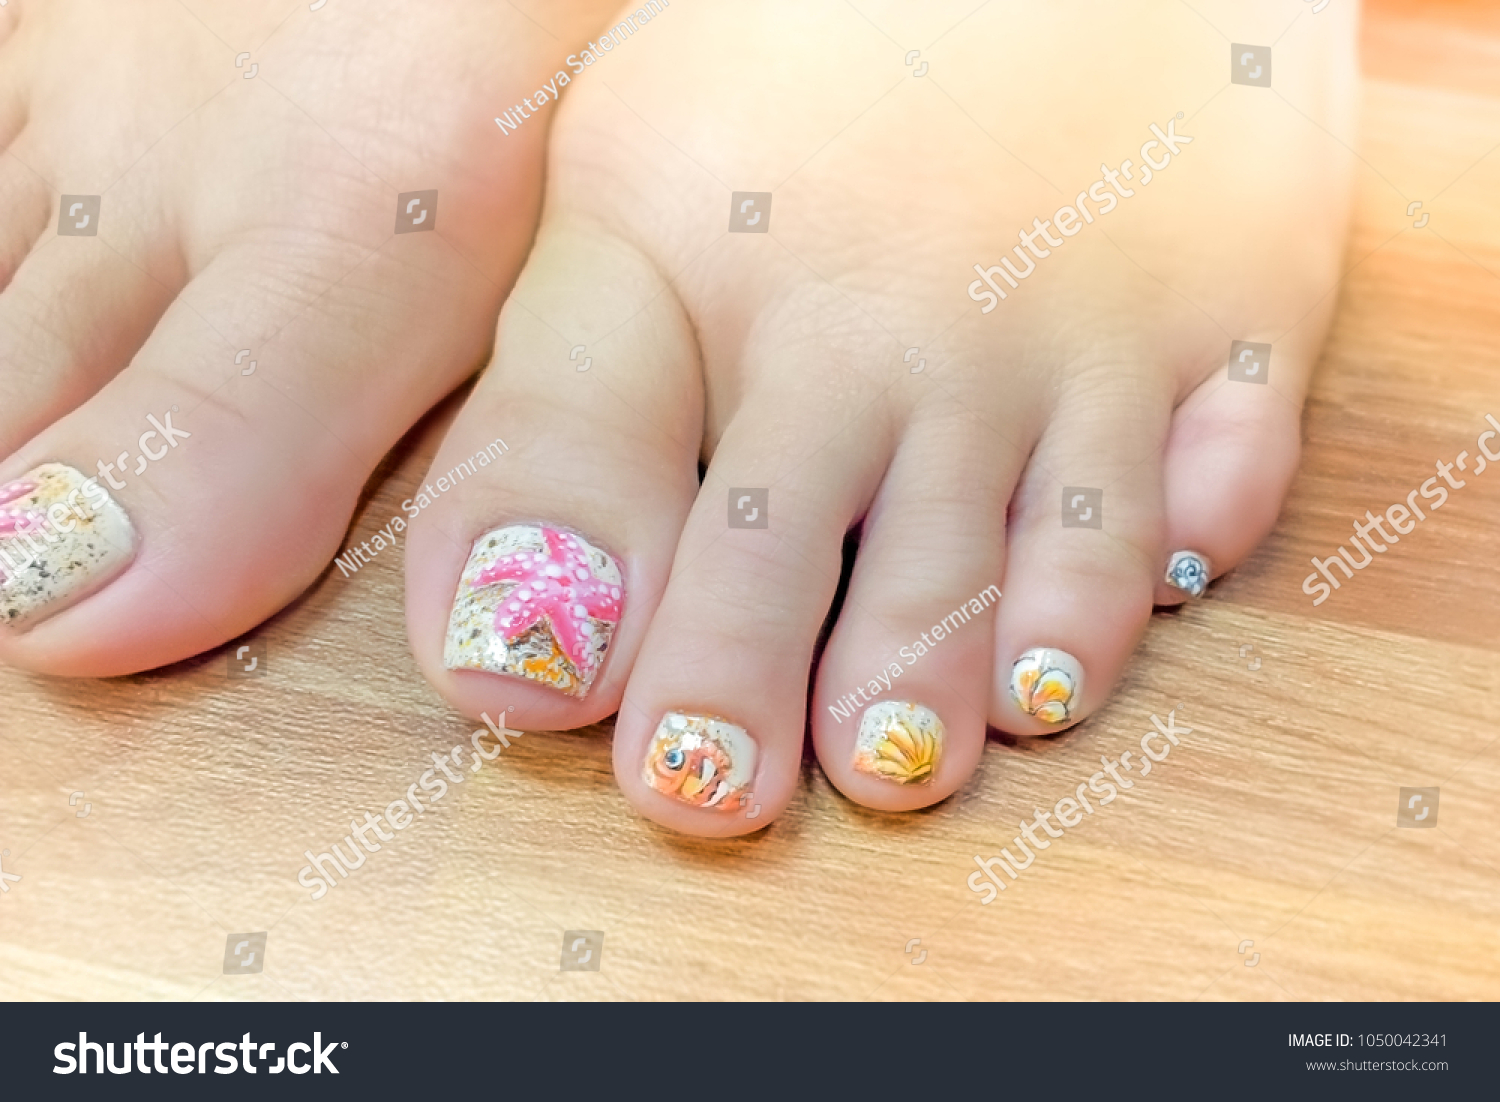 Close Colorful Nail Art Painting Design Stock Photo (Edit Now ...